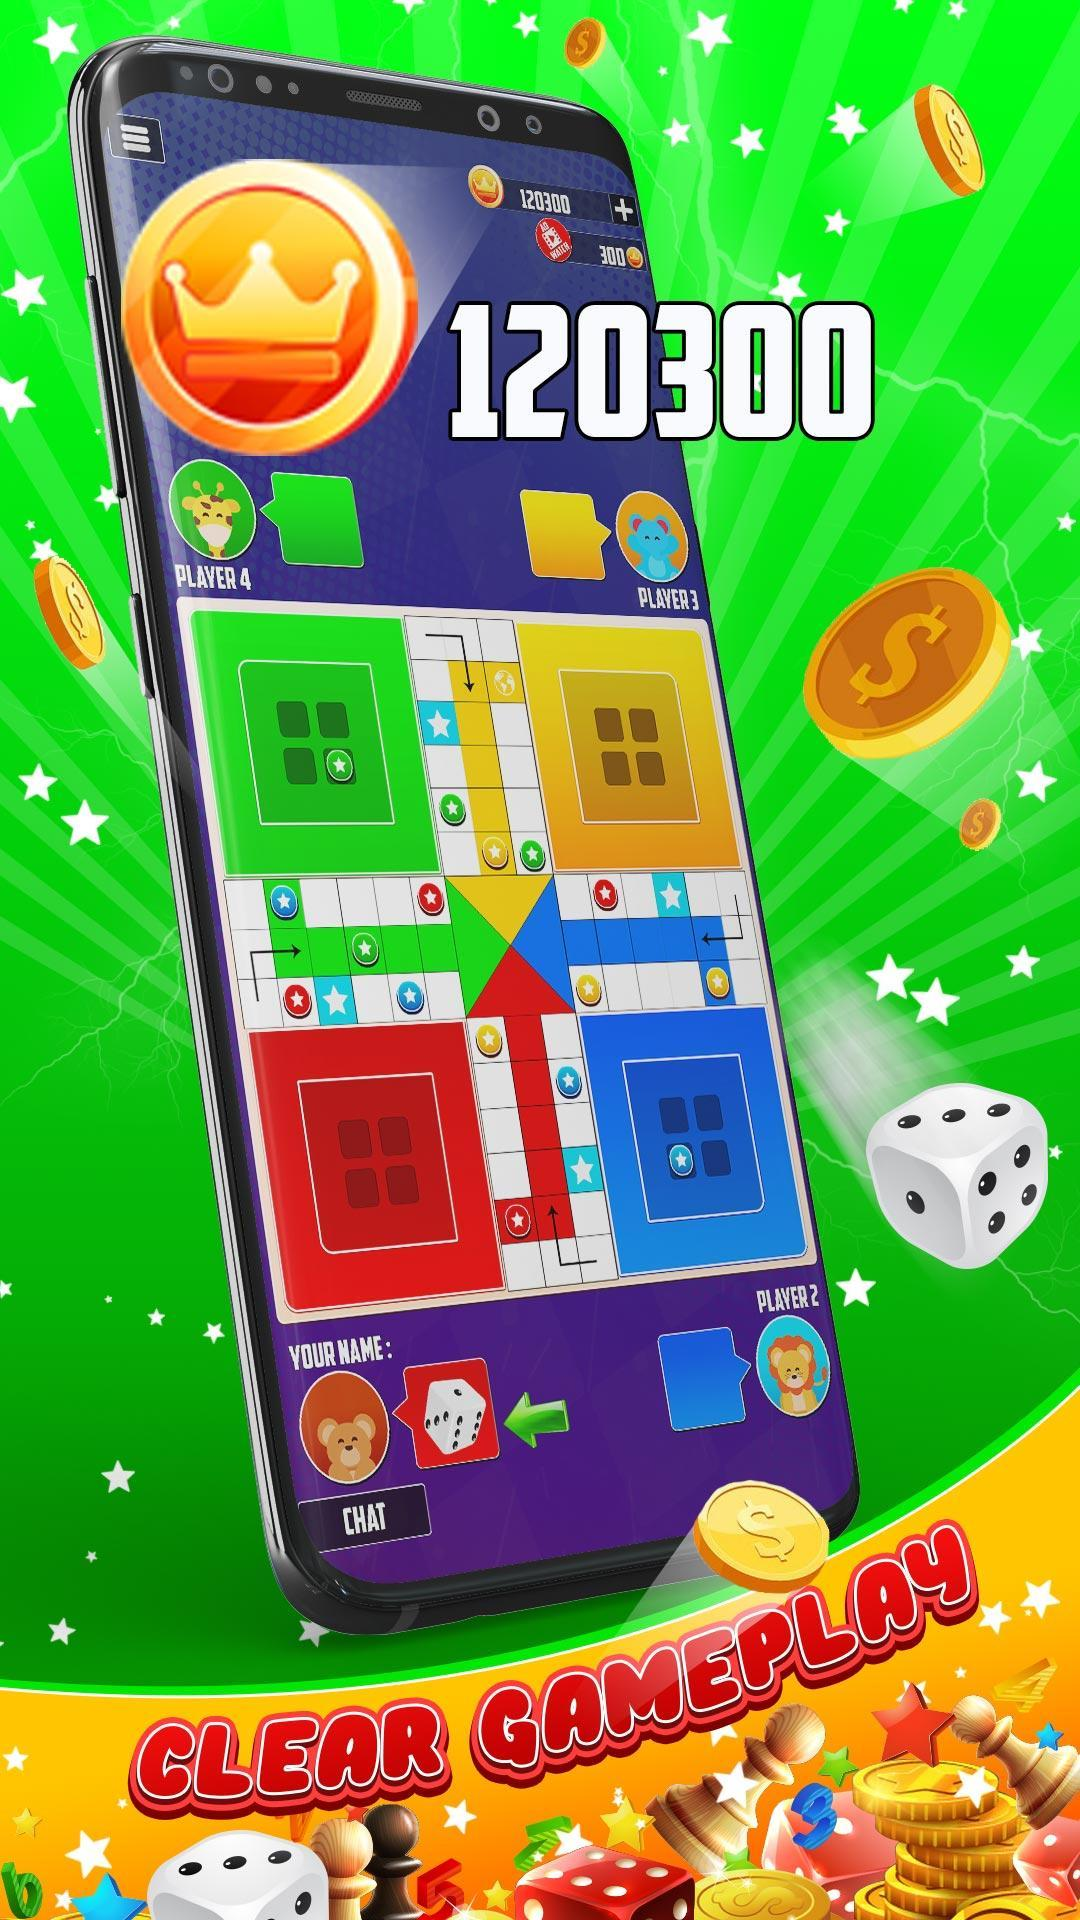 King of Ludo Dice Game with Free Voice Chat 2020 1.5.2 Screenshot 13